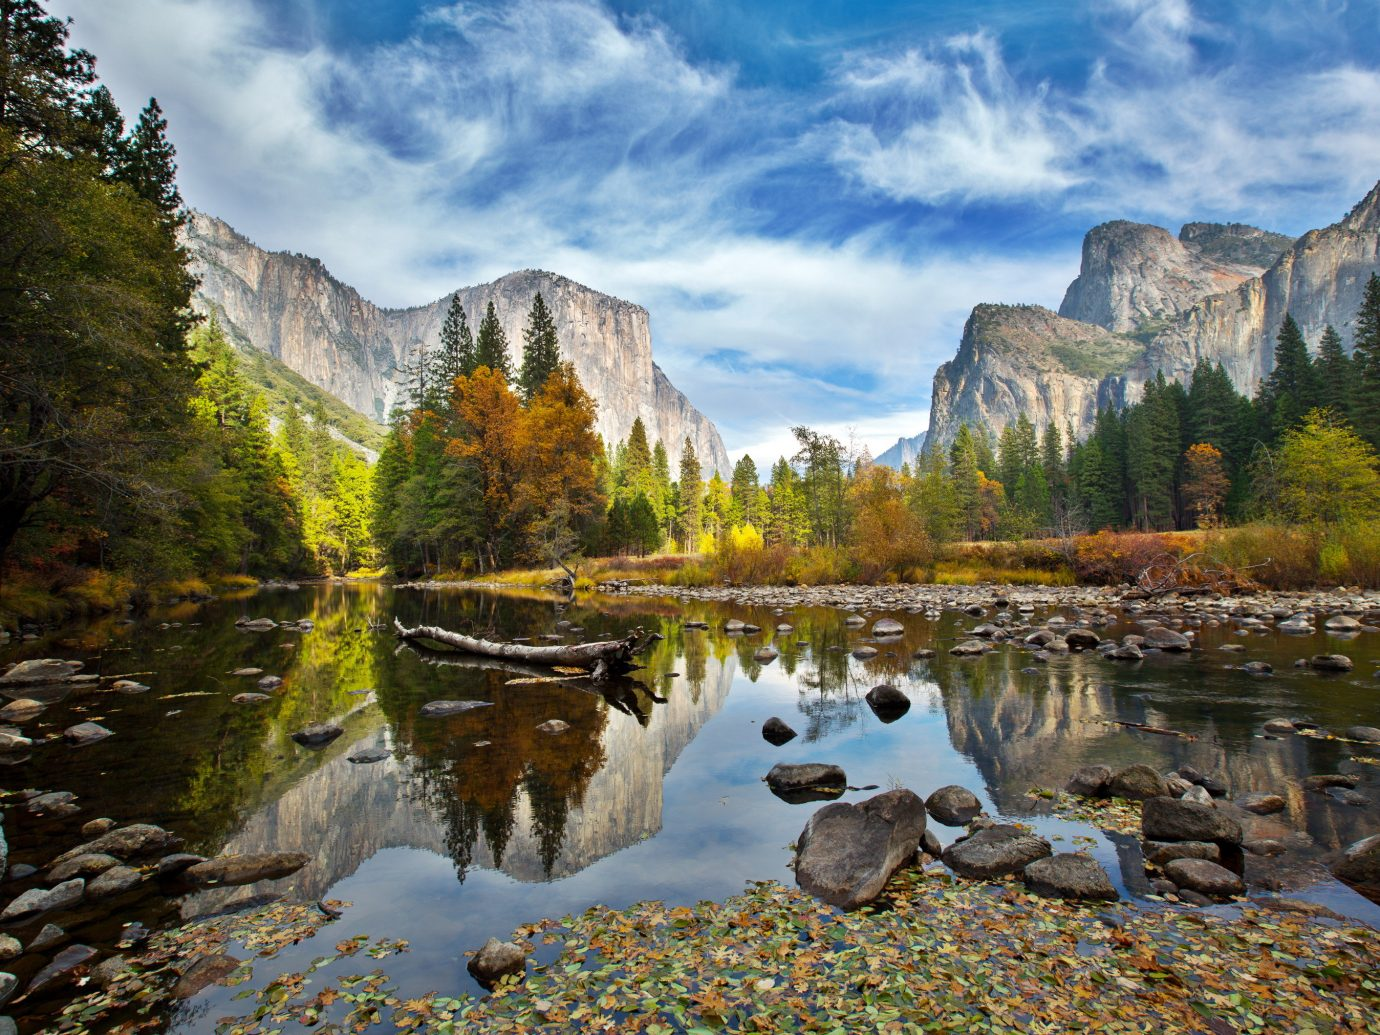 Trip Ideas outdoor mountain Nature mountainous landforms wilderness reflection body of water tree water Lake mountain range autumn season River landscape leaf valley rock loch park stream alps water feature pond national park surrounded